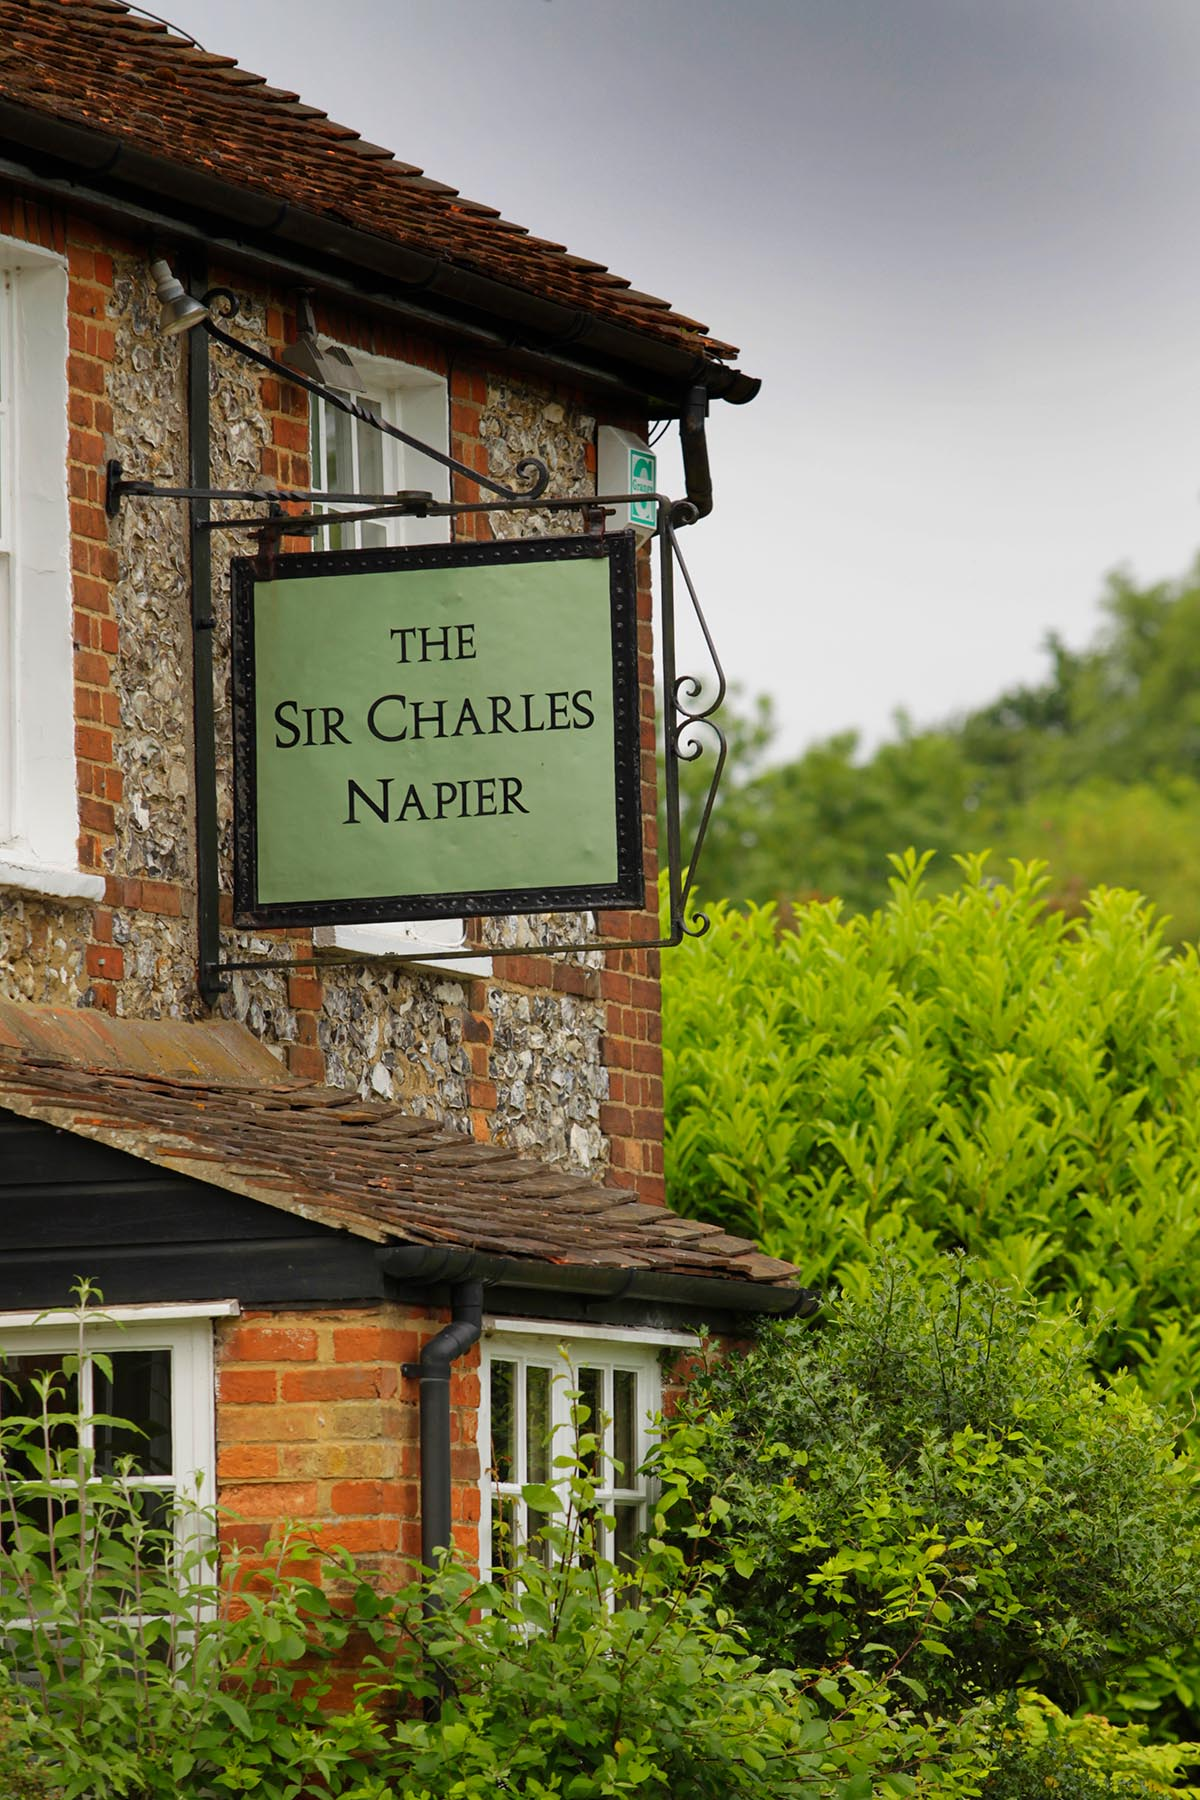 Exterior of The Sir Charles Napier with close up of sign